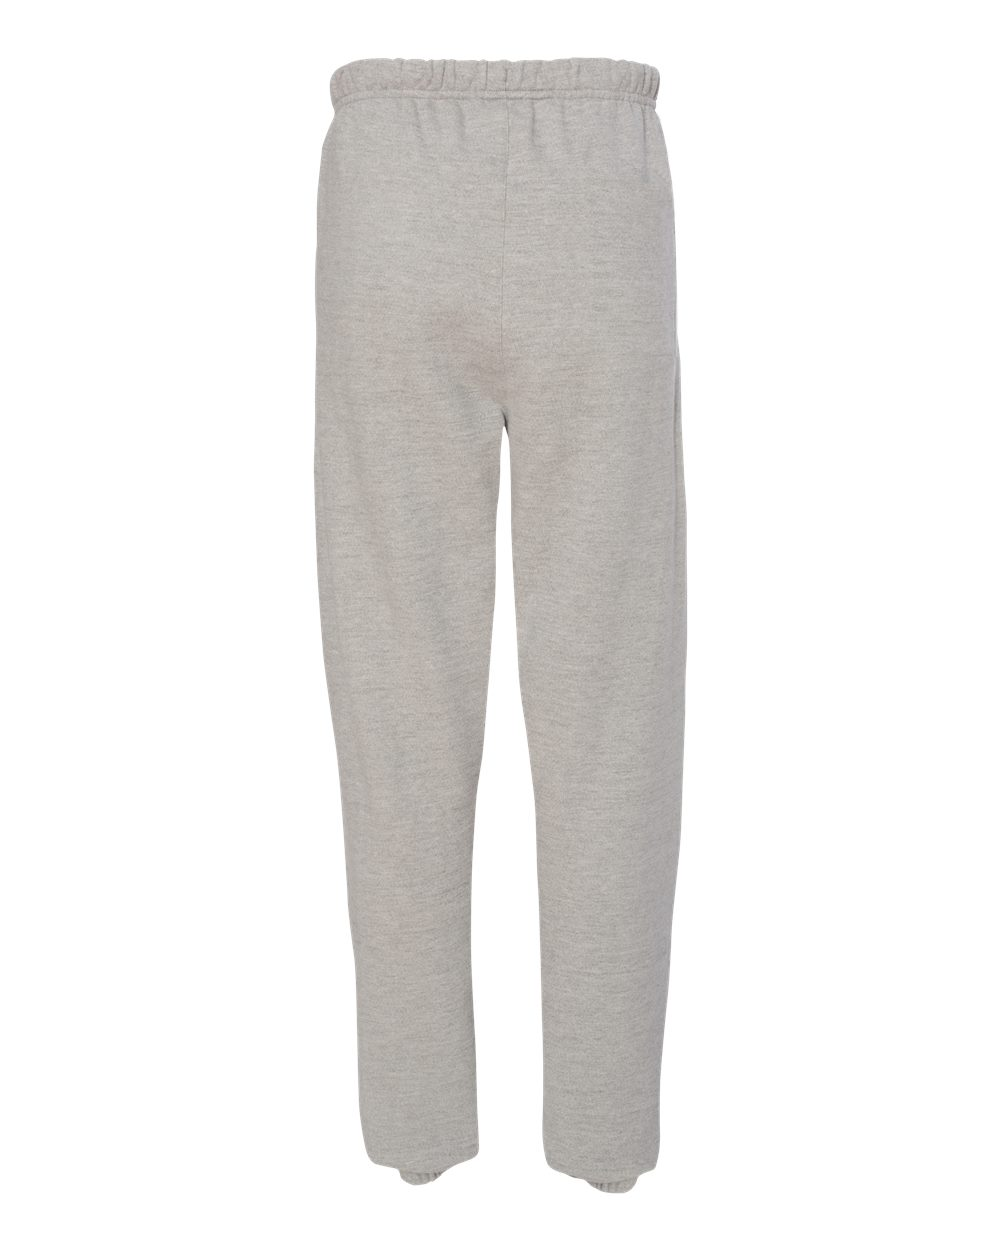 Champion-Mens-Reverse-Weave-Sweatpants-with-Pockets-RW10-up-to-3XL thumbnail 10